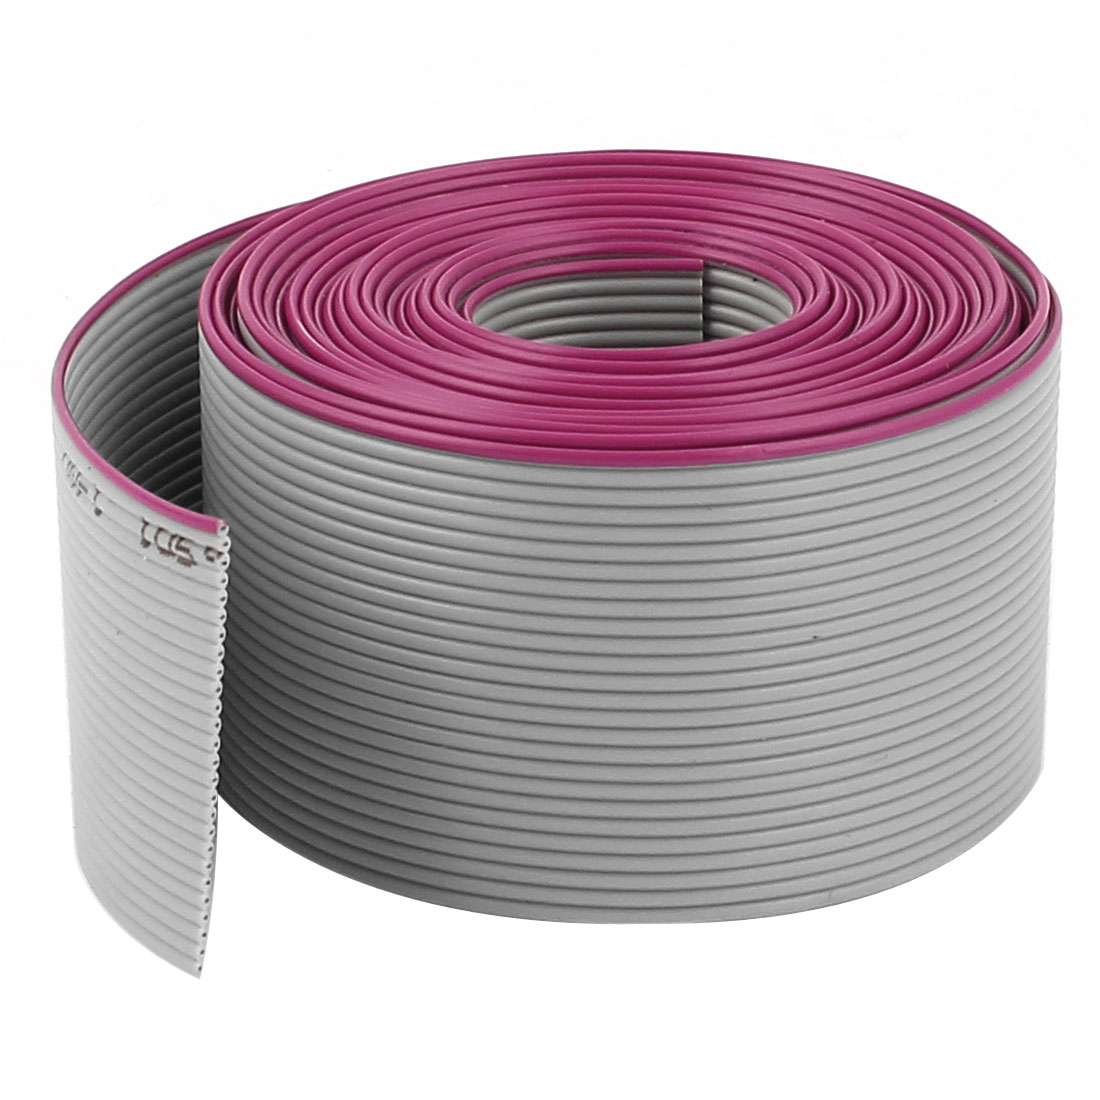 New 26Pin 2.7m Breadboard Jumper Wire Cable Gray